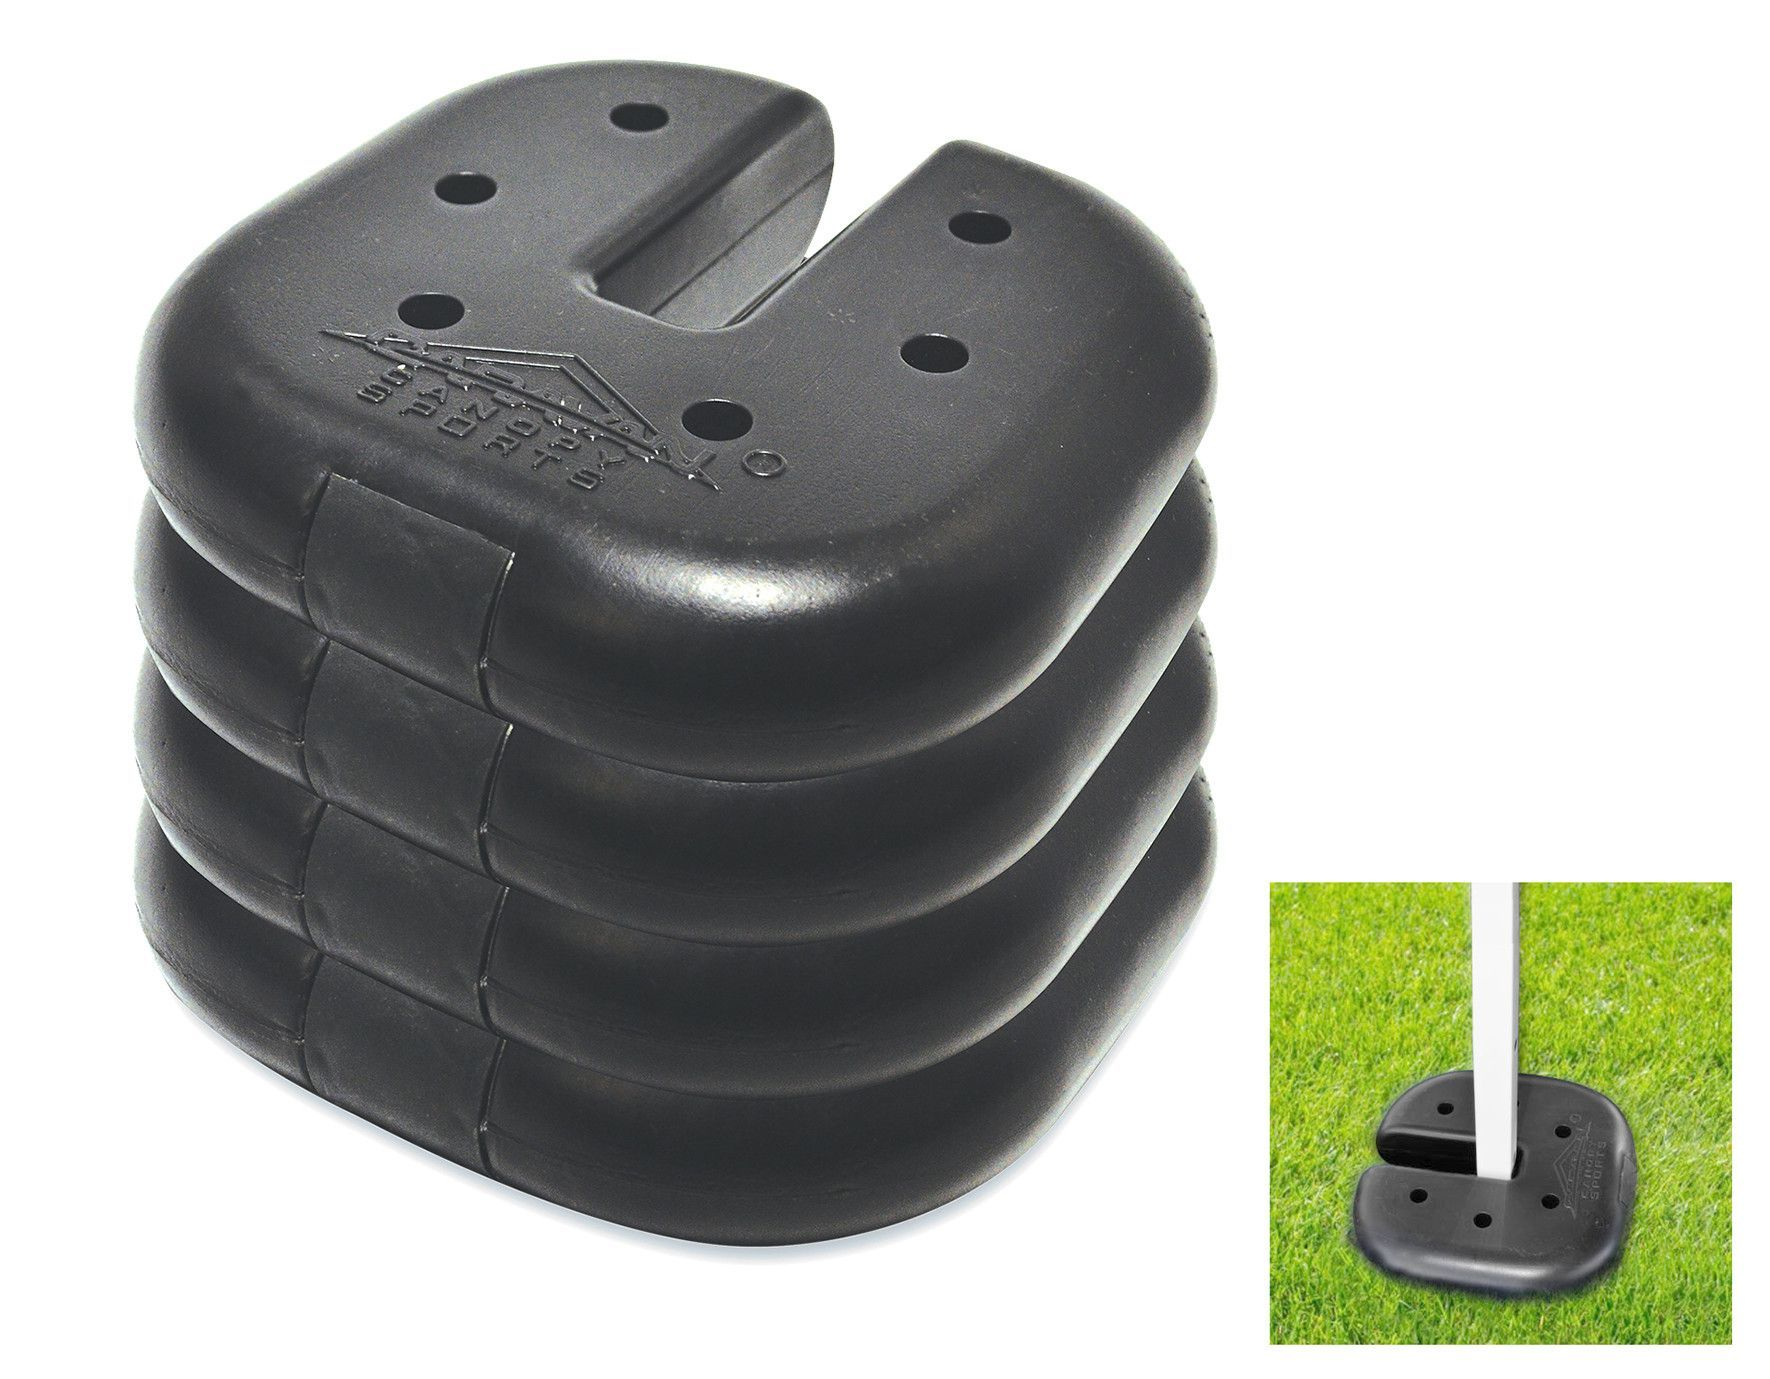 Caravan Canopy Sports Canopy Weight Plate Canopy Weights Canopy